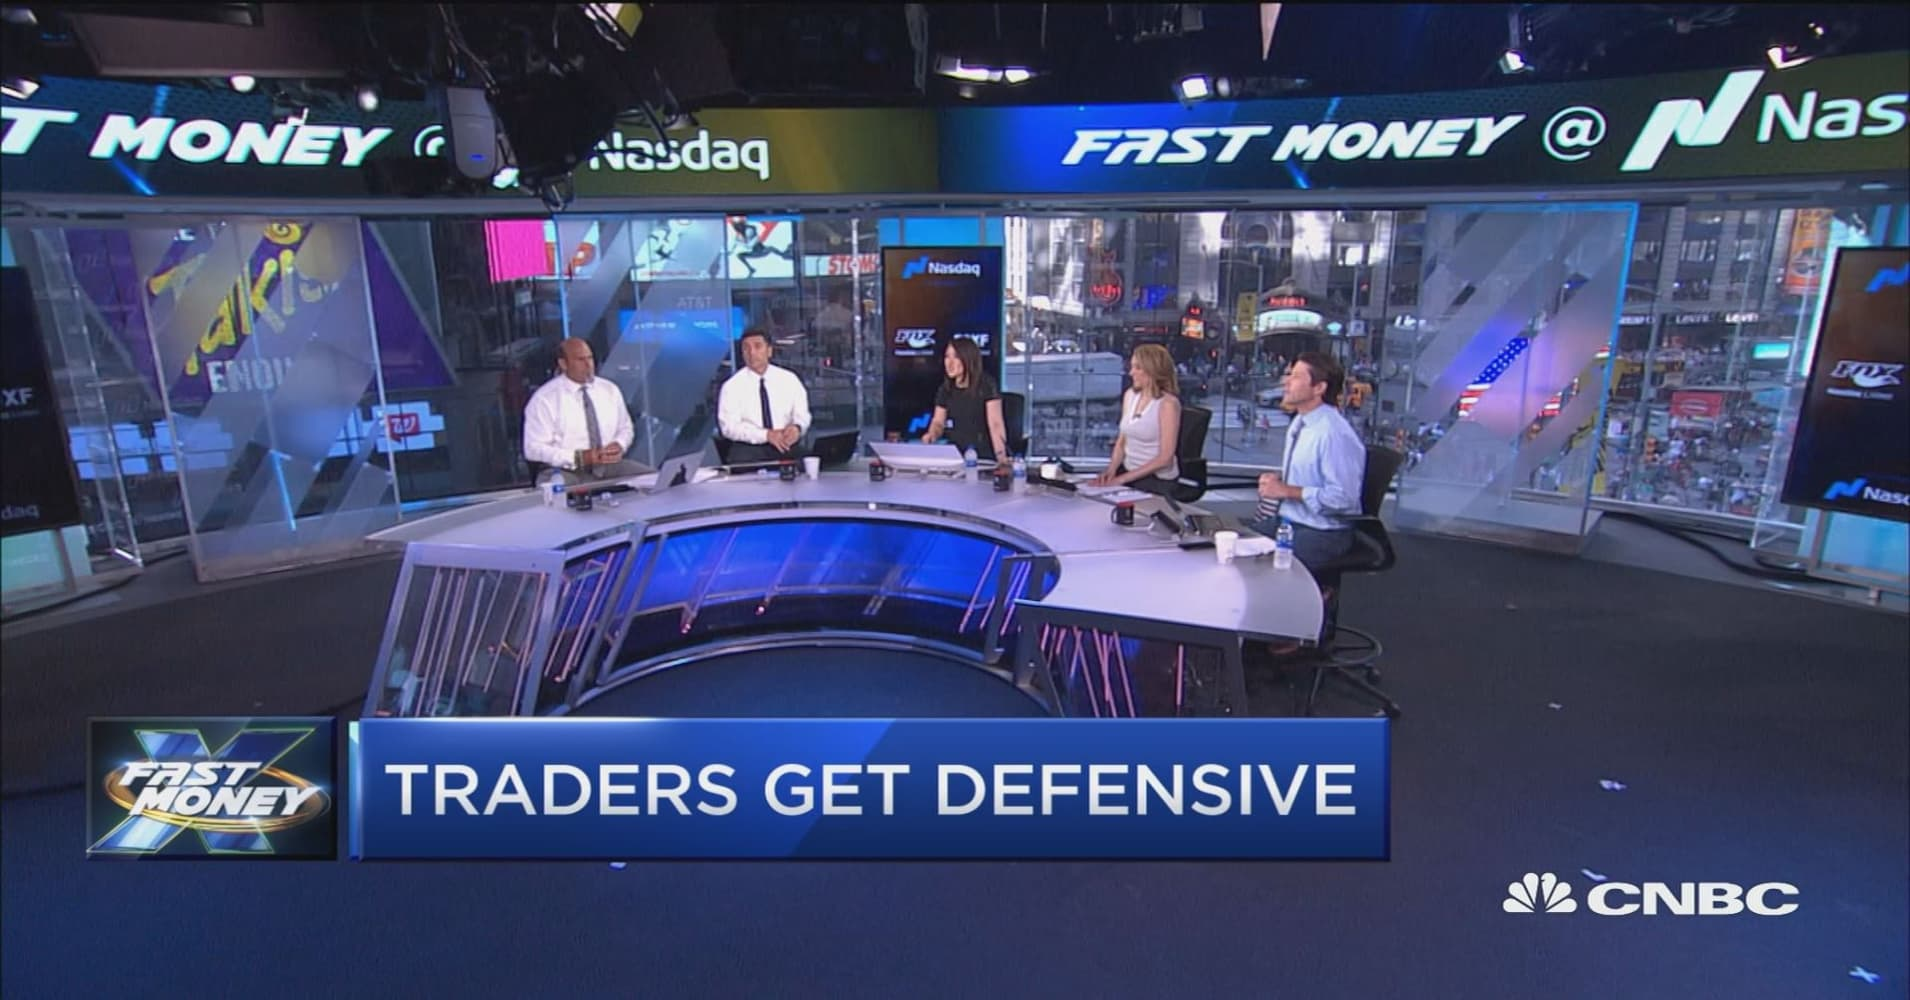 Traders get defensive... Is it time to play defense with your money?